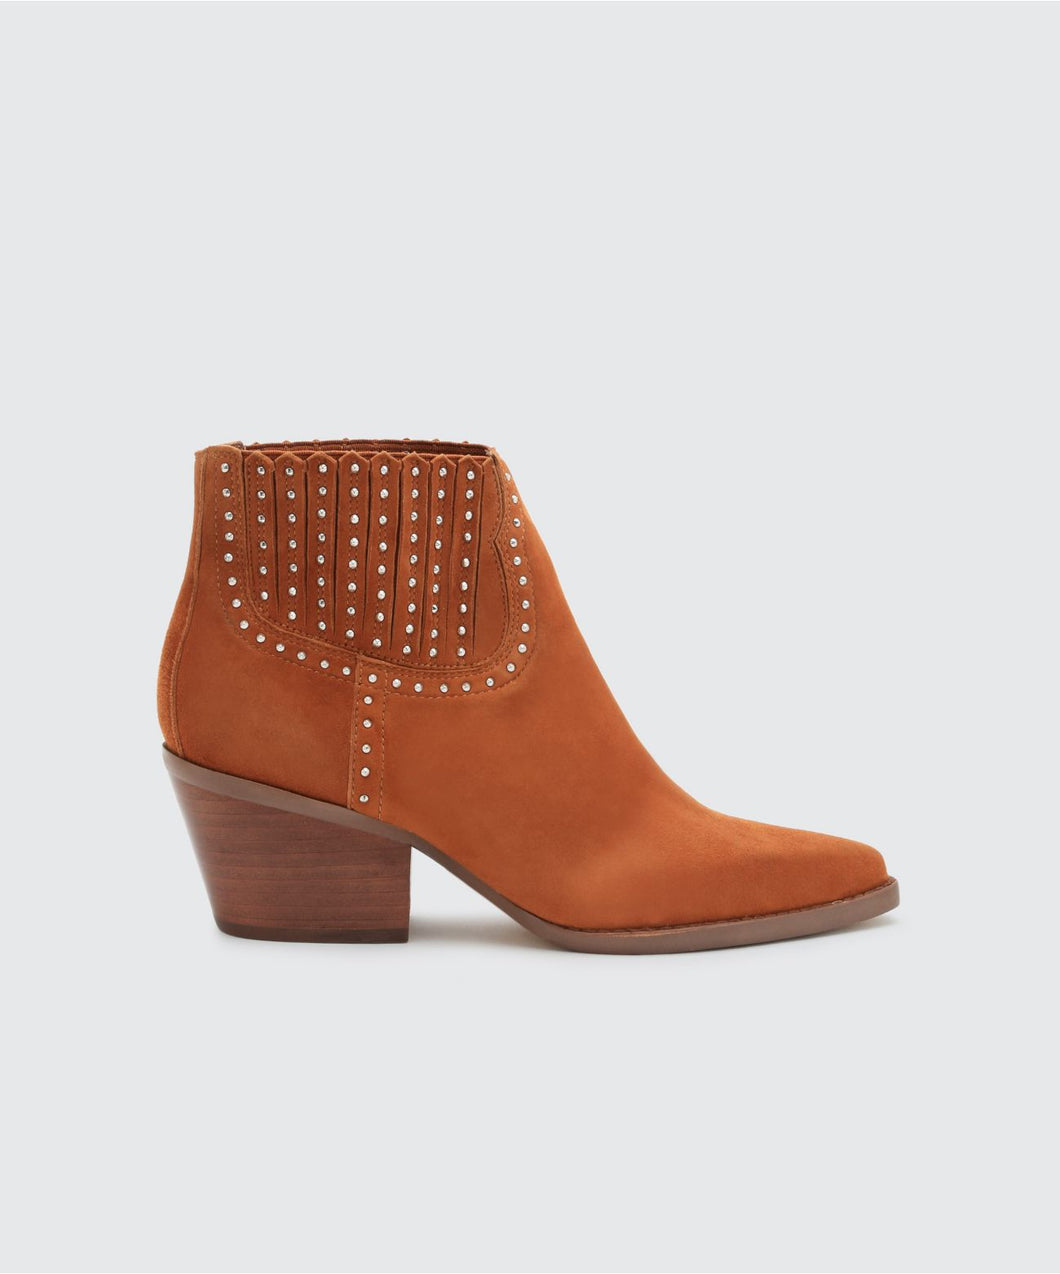 SETHE BOOTIES IN BROWN -   Dolce Vita